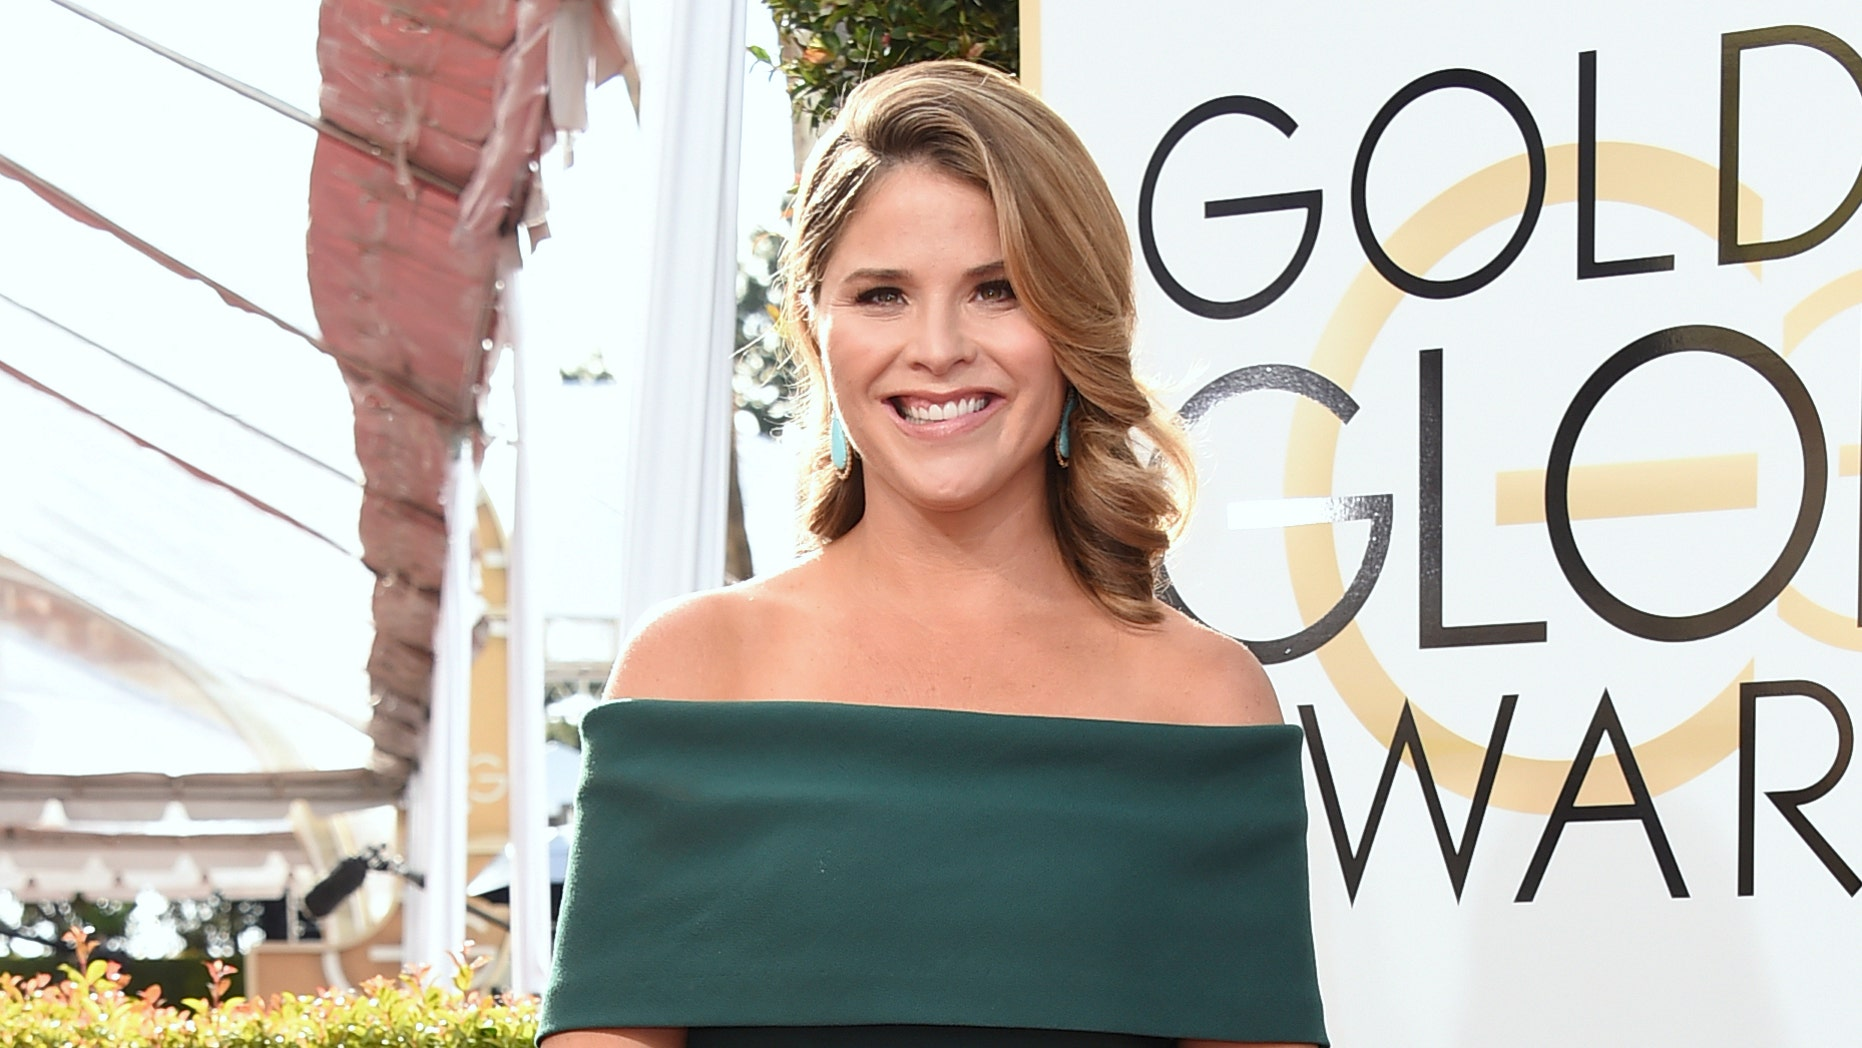 Jenna Bush Hager Announces She's Pregnant With Third Child